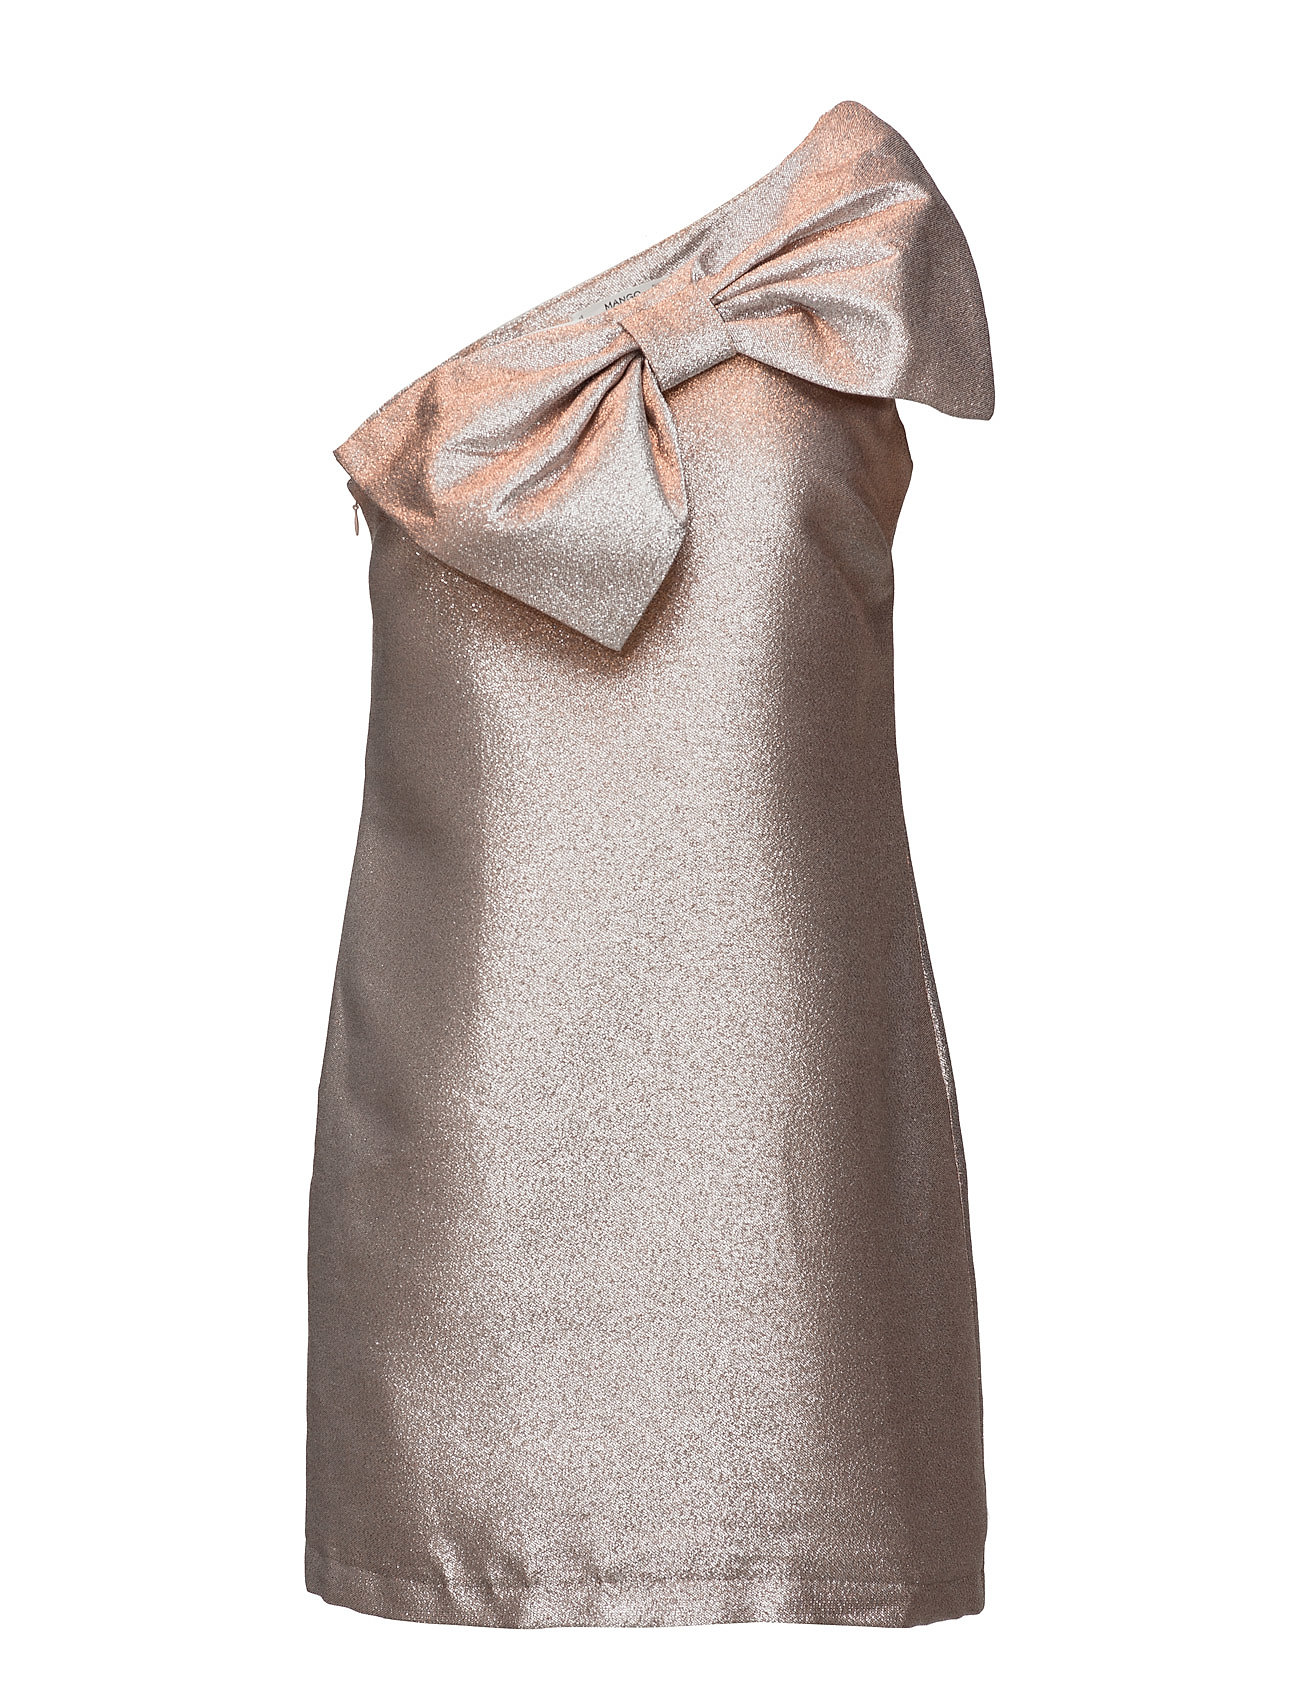 b556e923 Superlekre Bow Metallic Dress Mango Korte Kjoler til i skjønne materialer